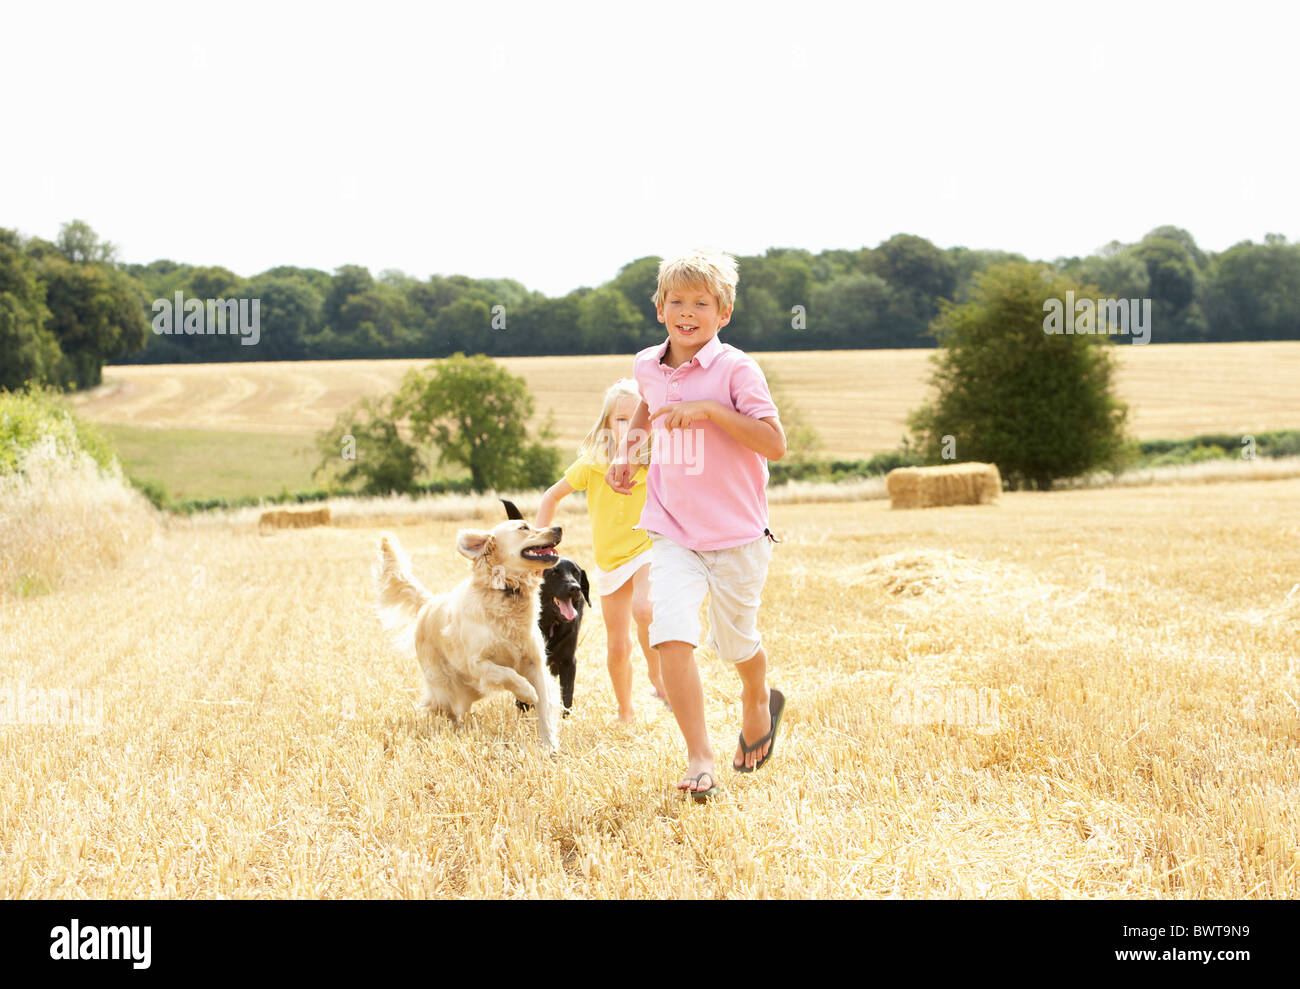 Boy With Dogs Running Through Summer Harvested Field - Stock Image